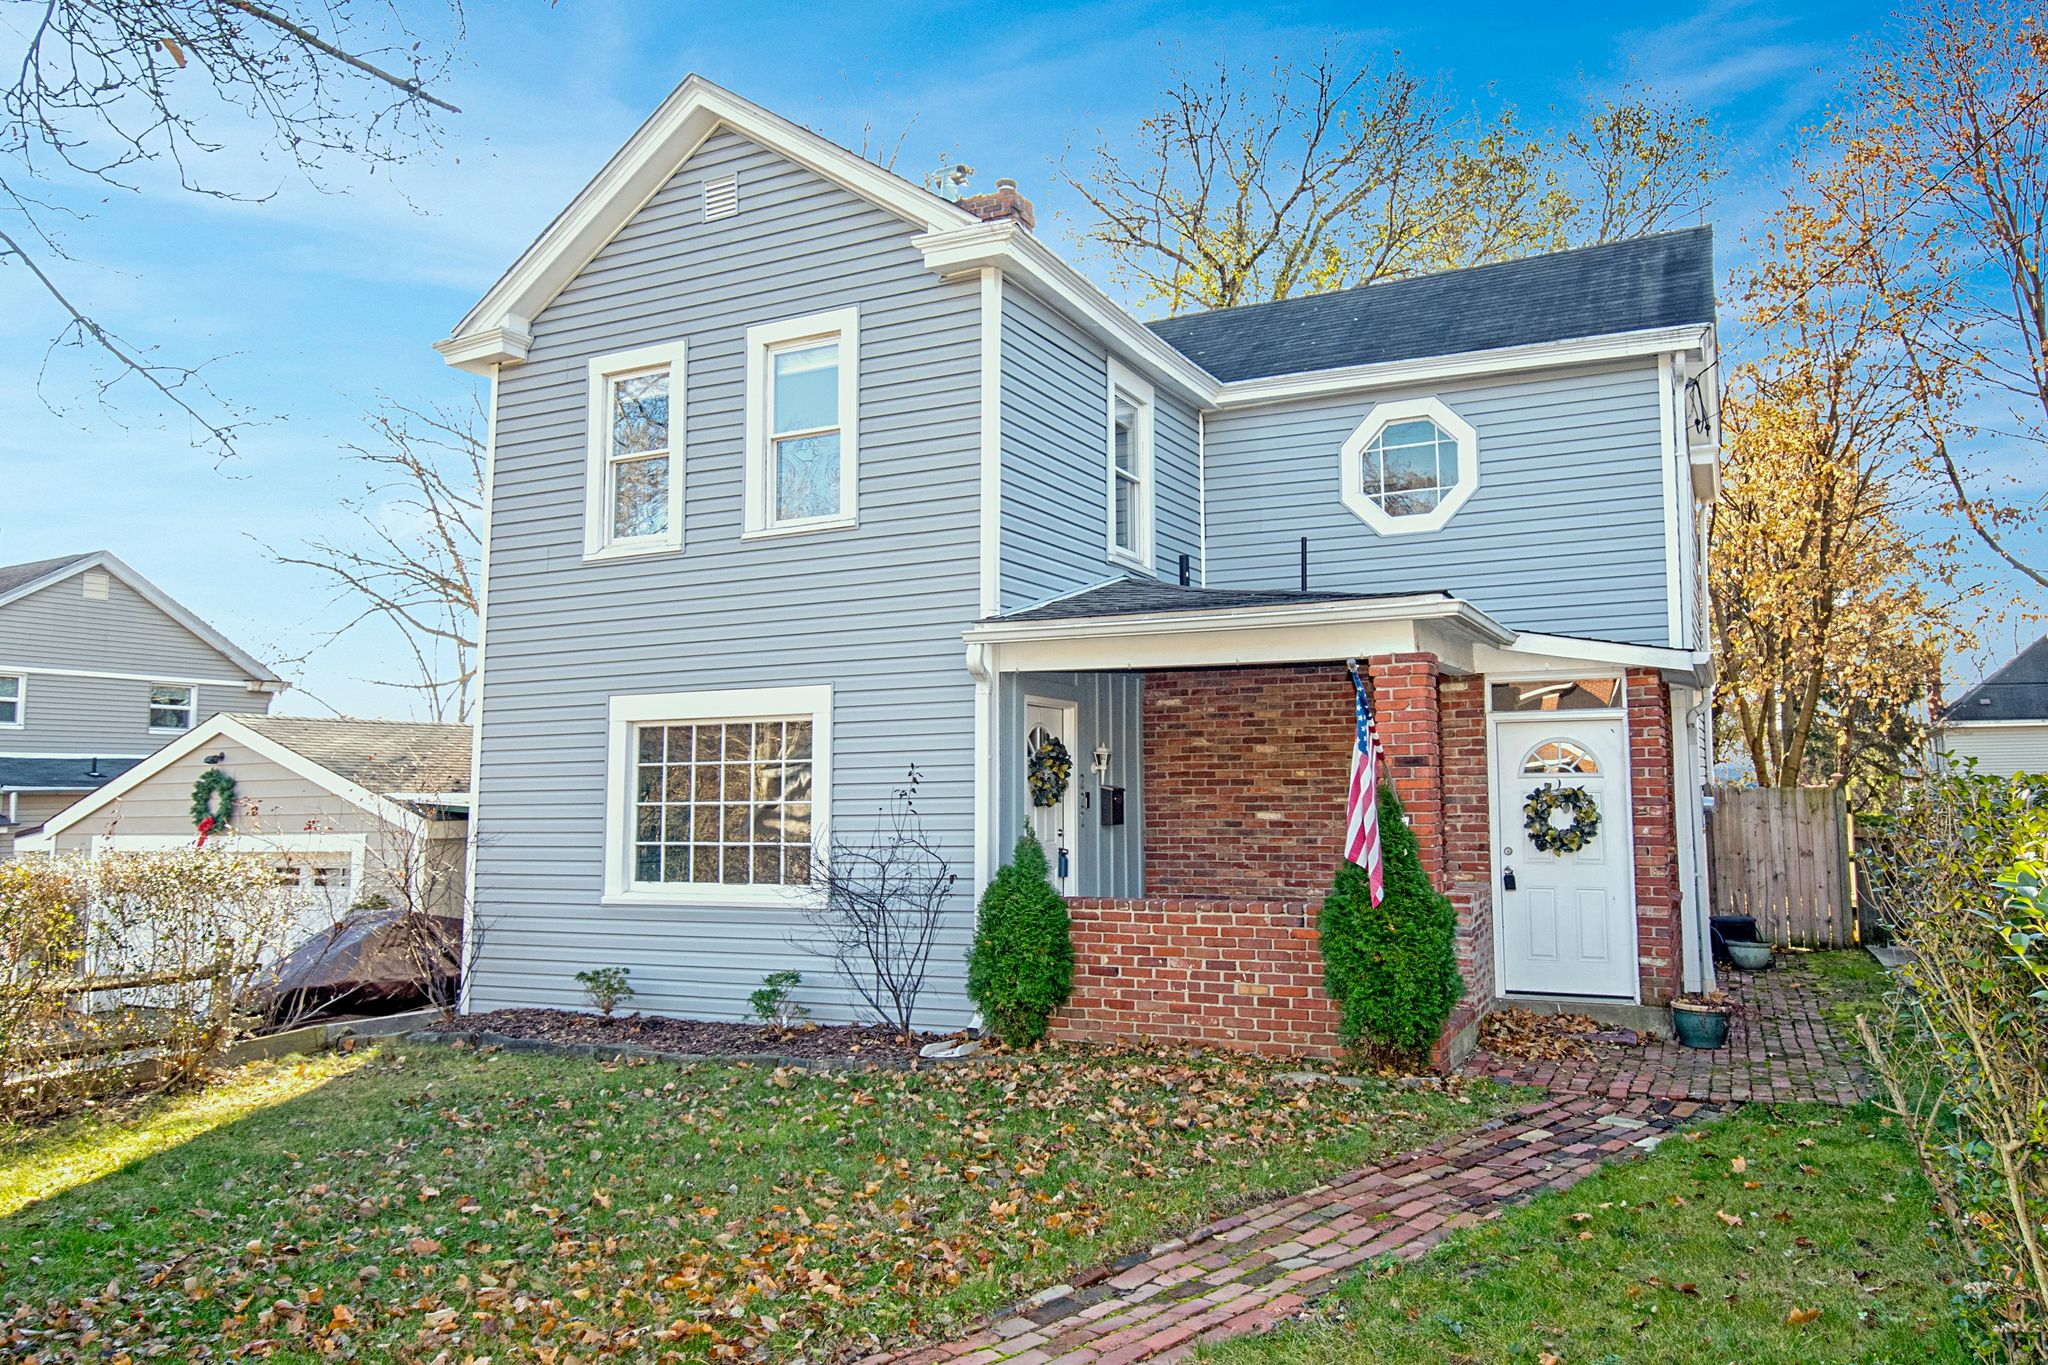 222 10th St, Pittsburgh, PA 15215 - Estimate and Home Details | Trulia